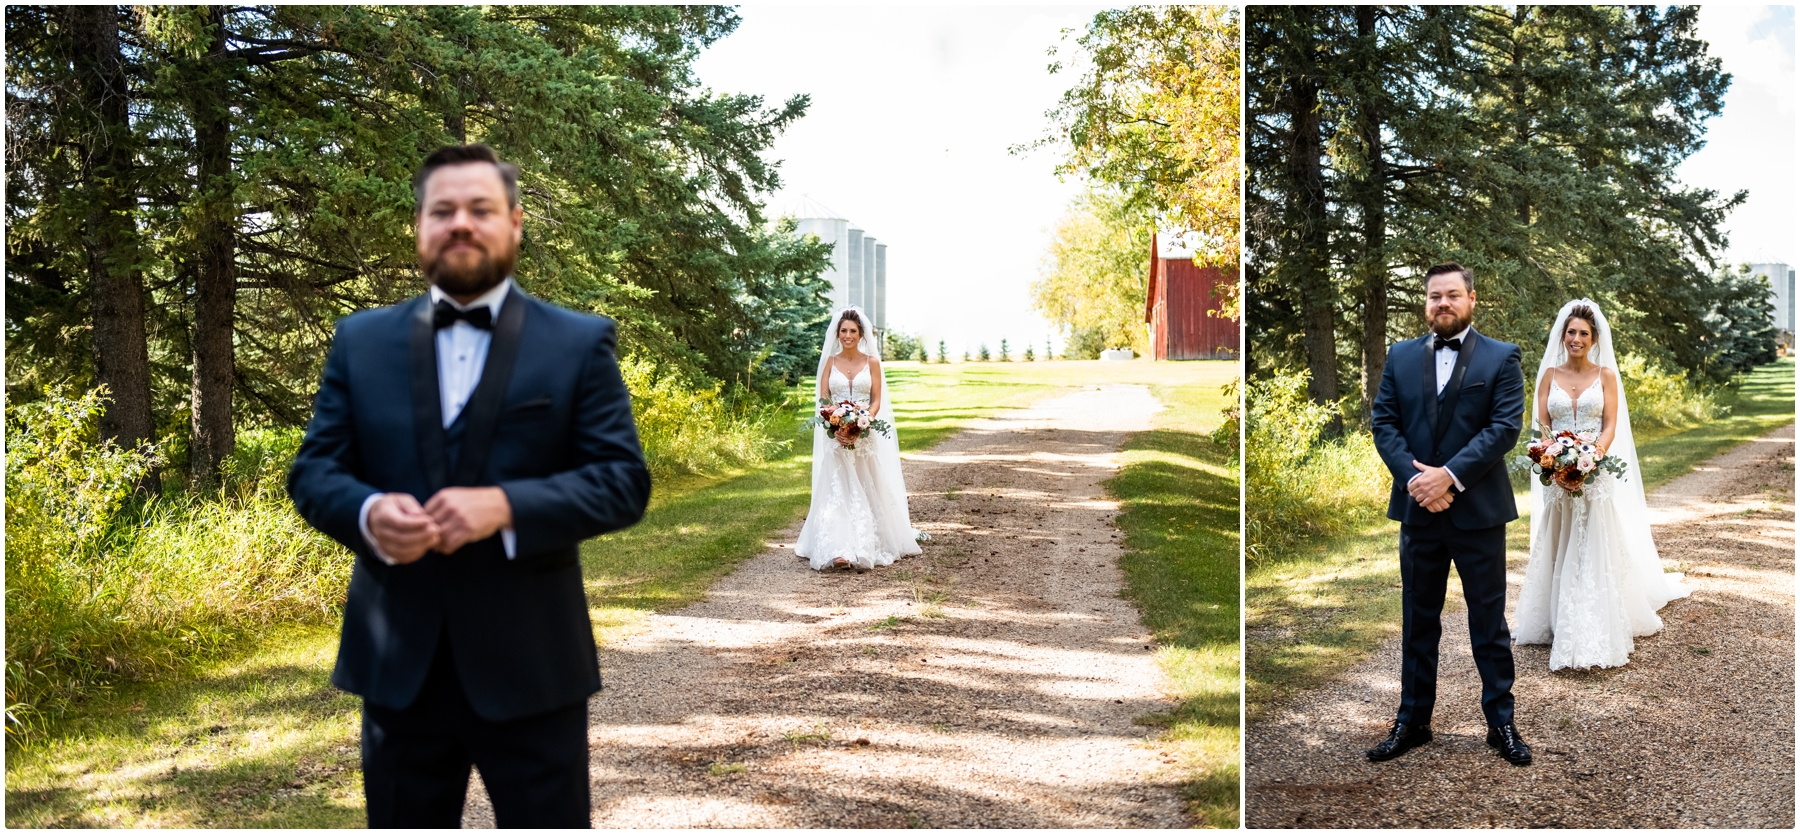 Sweet Haven Bar Wedding Photographers - Autumn Barn Wedding